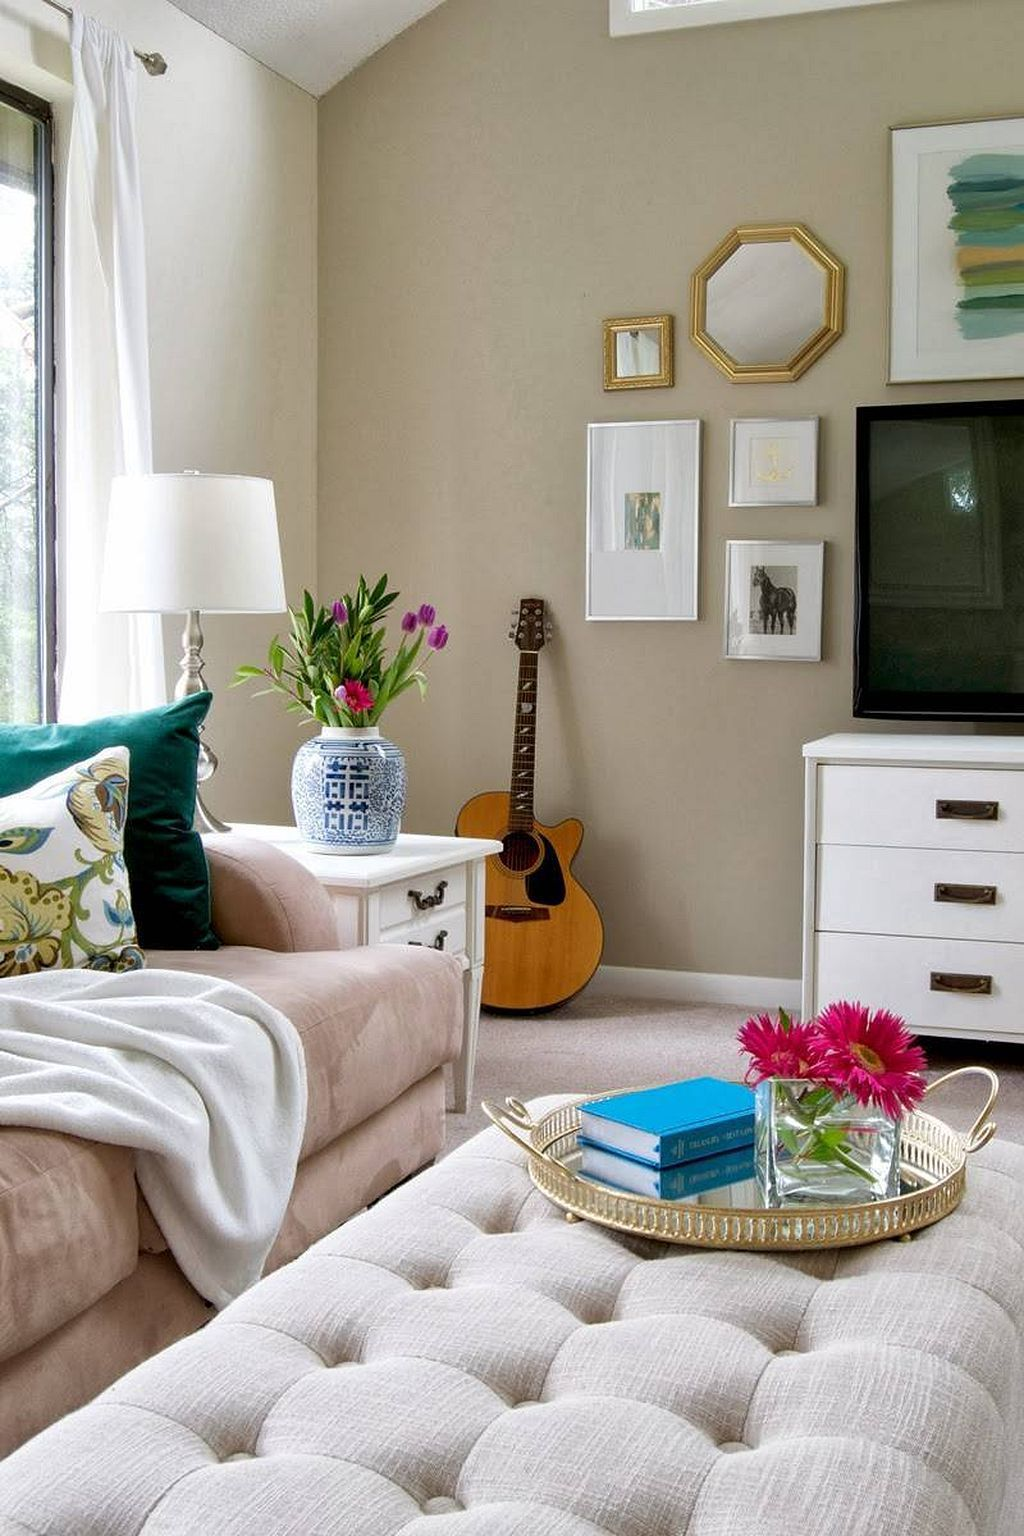 DIY Low-Budget Small Apartment Decorating Ideas 19   Small ...